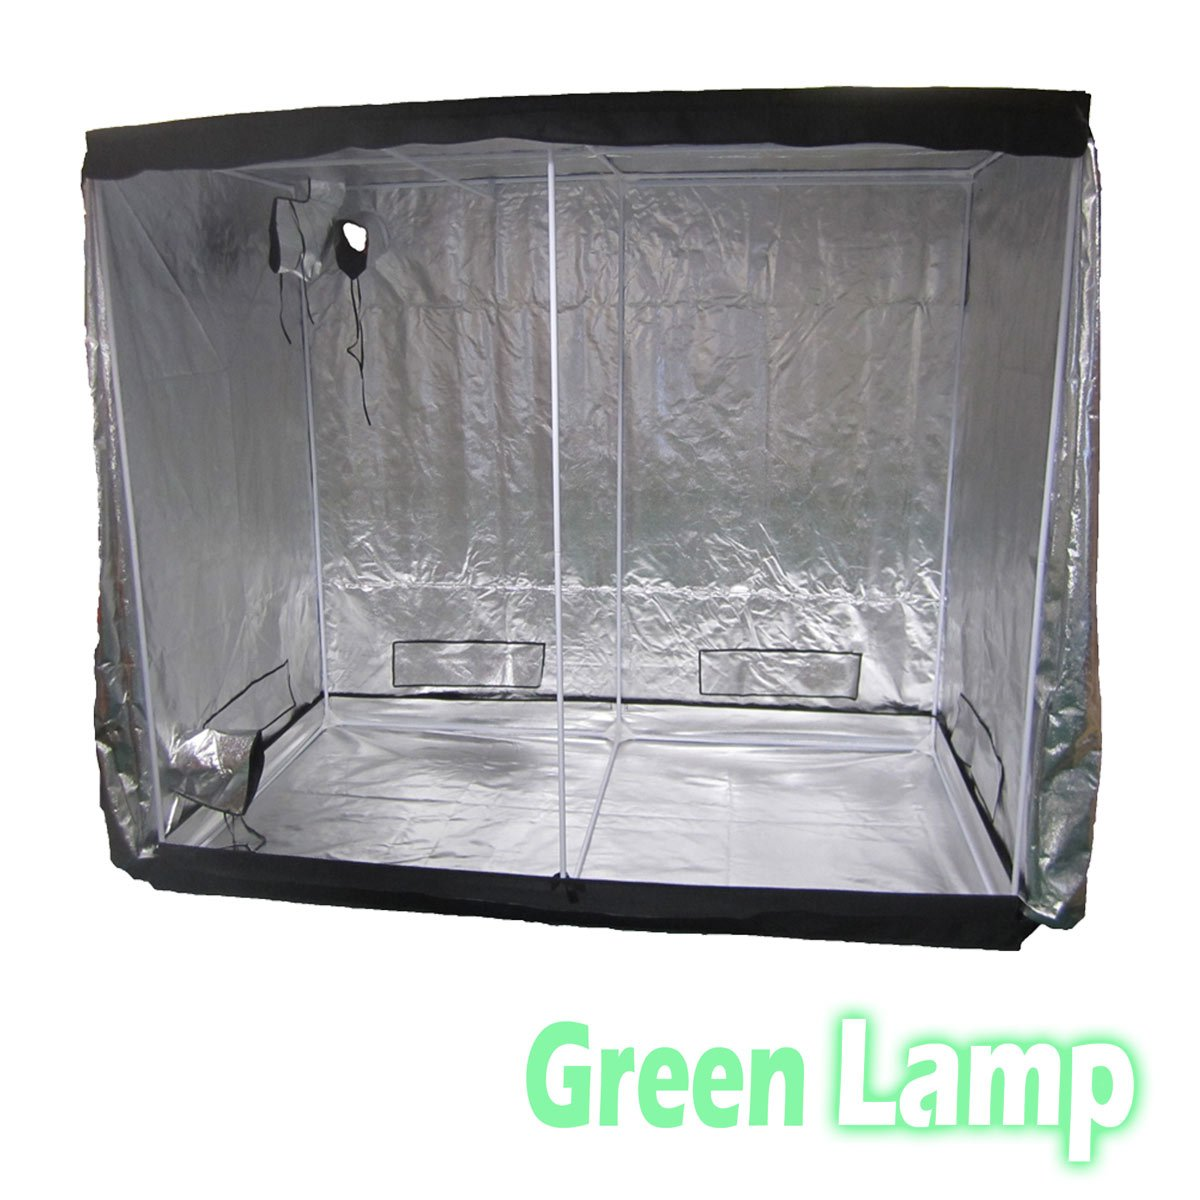 Green Lamp Premium 60 x 60 x 140cm 600D Mylar Indoor Grow Tent Box Hydroponics Dark Room